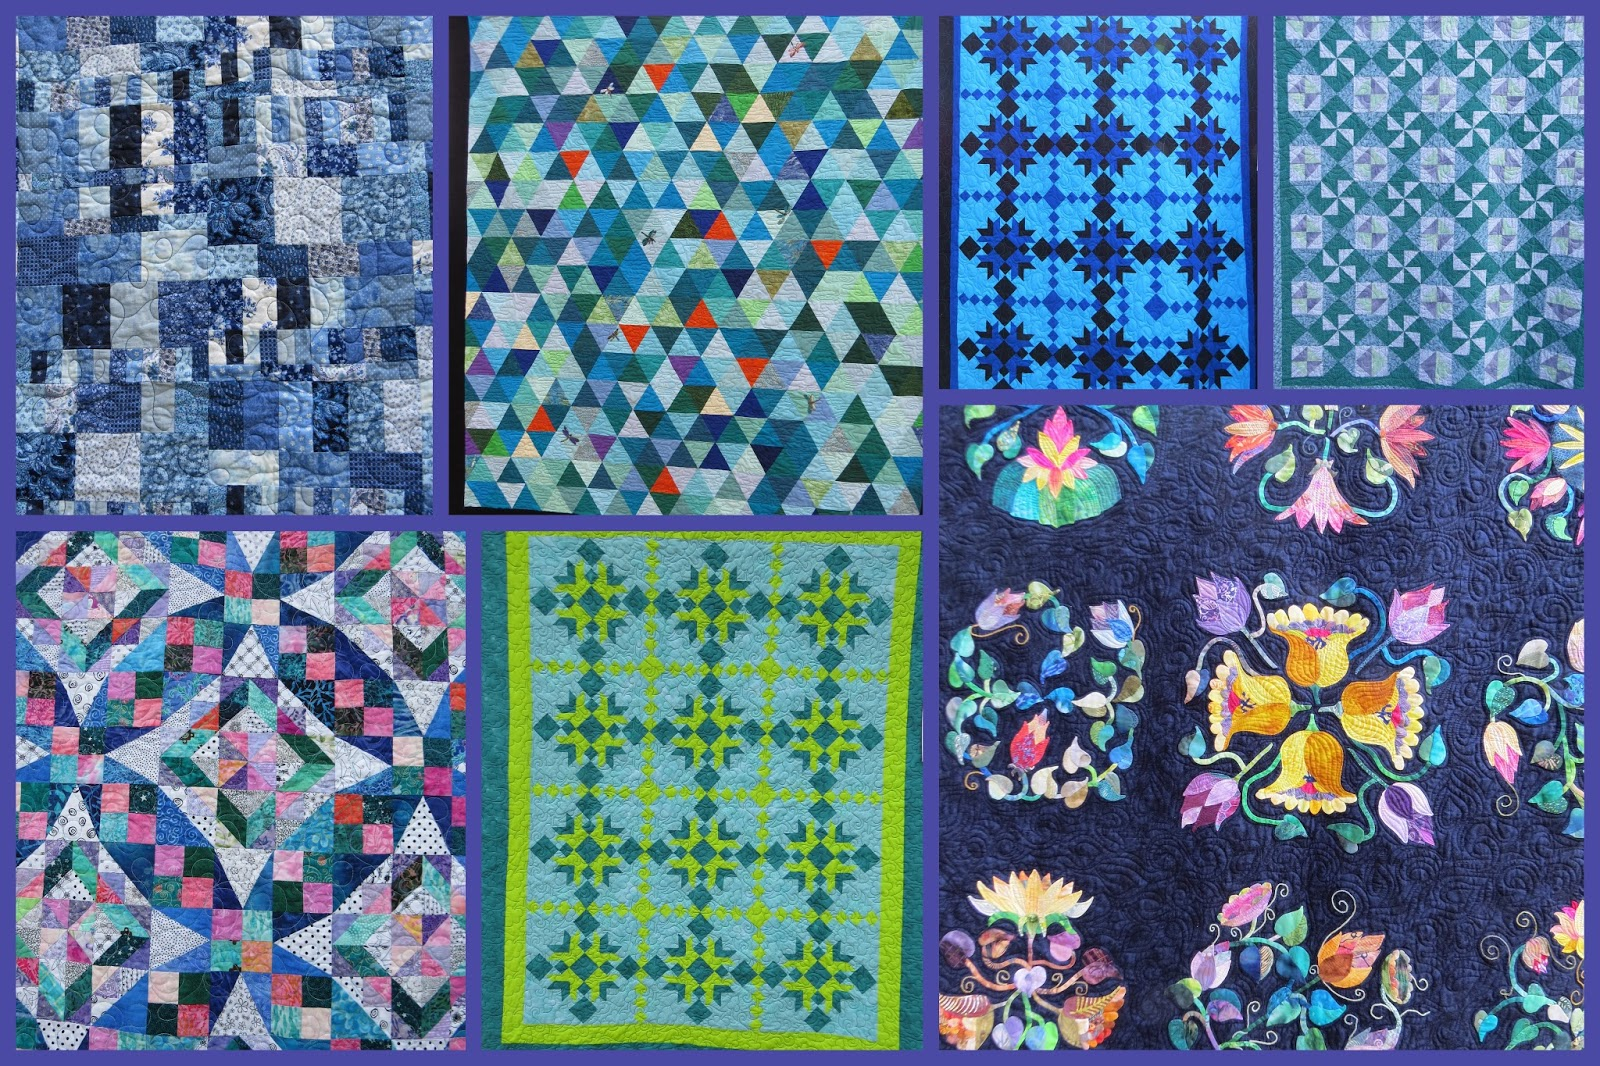 on an pinterest maryline best images quiltinspire for rhythm exhibition by mary quilts patch quilt at collioud cm robert colorful